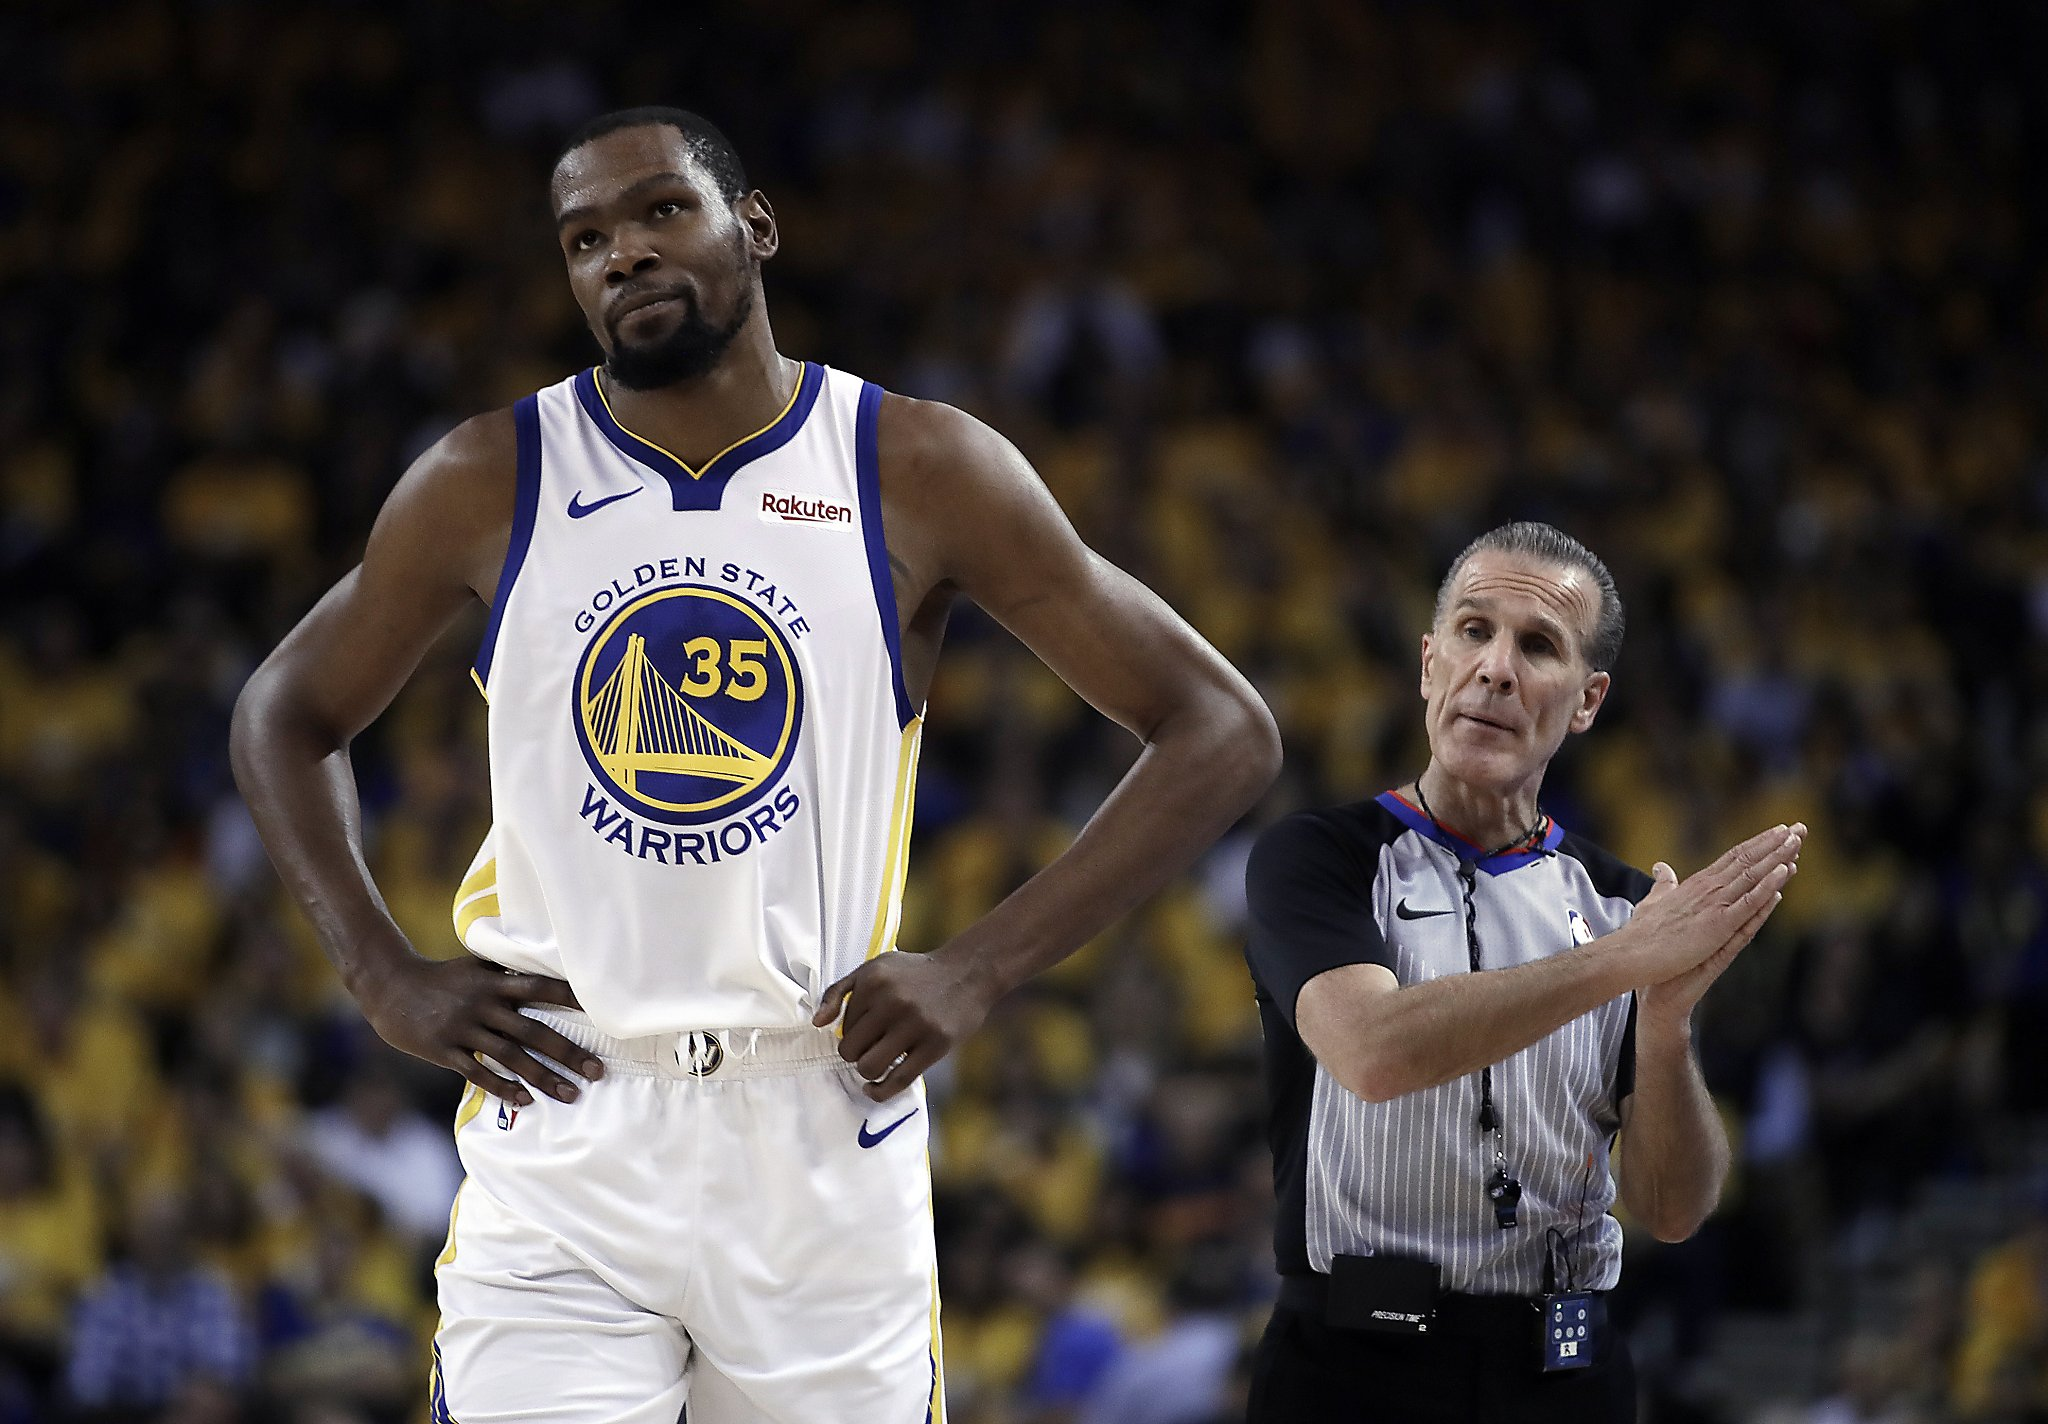 Warriors' star Kevin Durant striking back at critics on social media